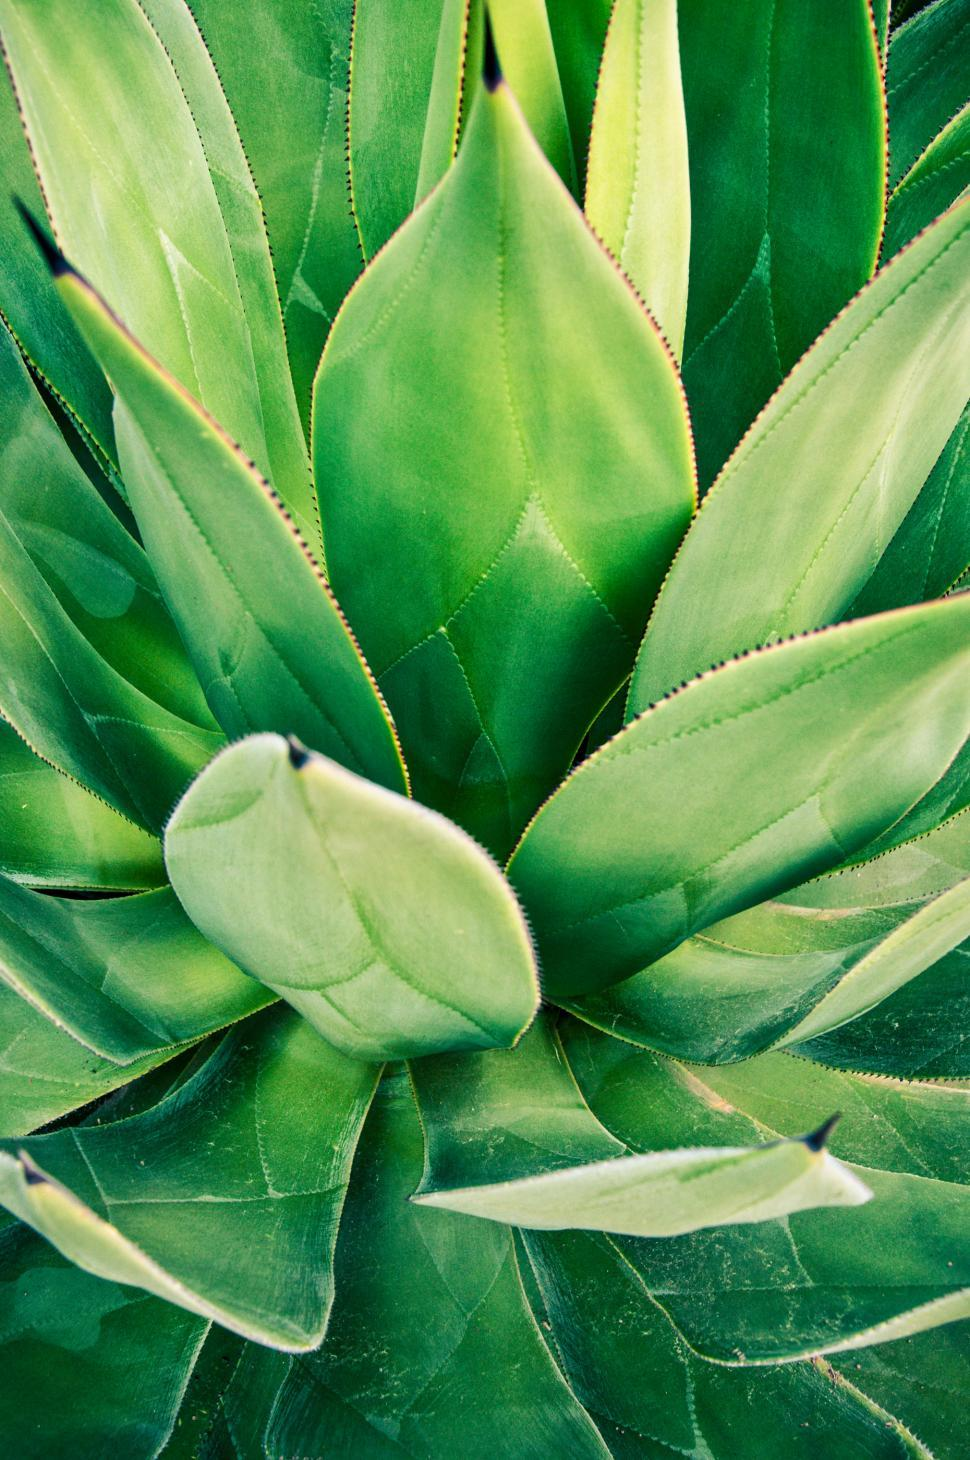 Download Free Stock HD Photo of Sharp pointed agave plant leaves Online